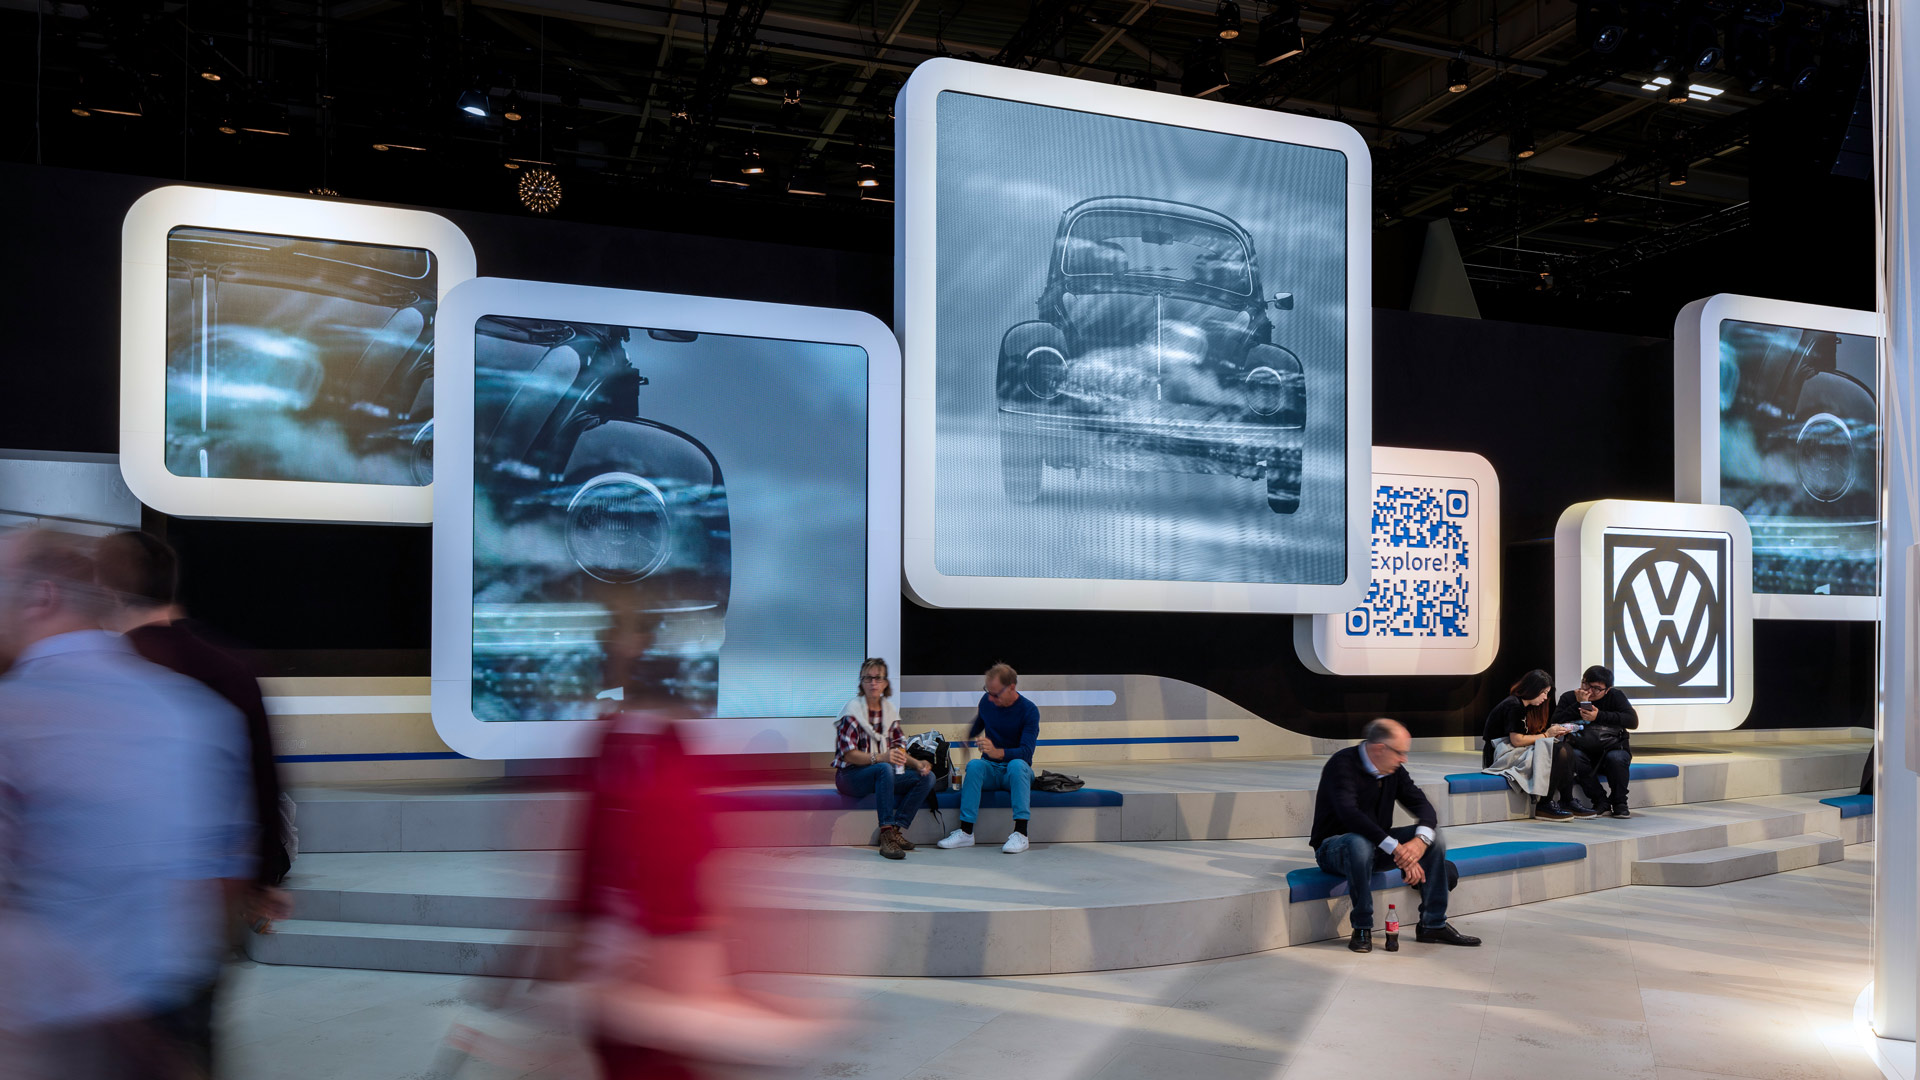 Visitors sit in front of big pictures of the old VW Beetle and take a break.